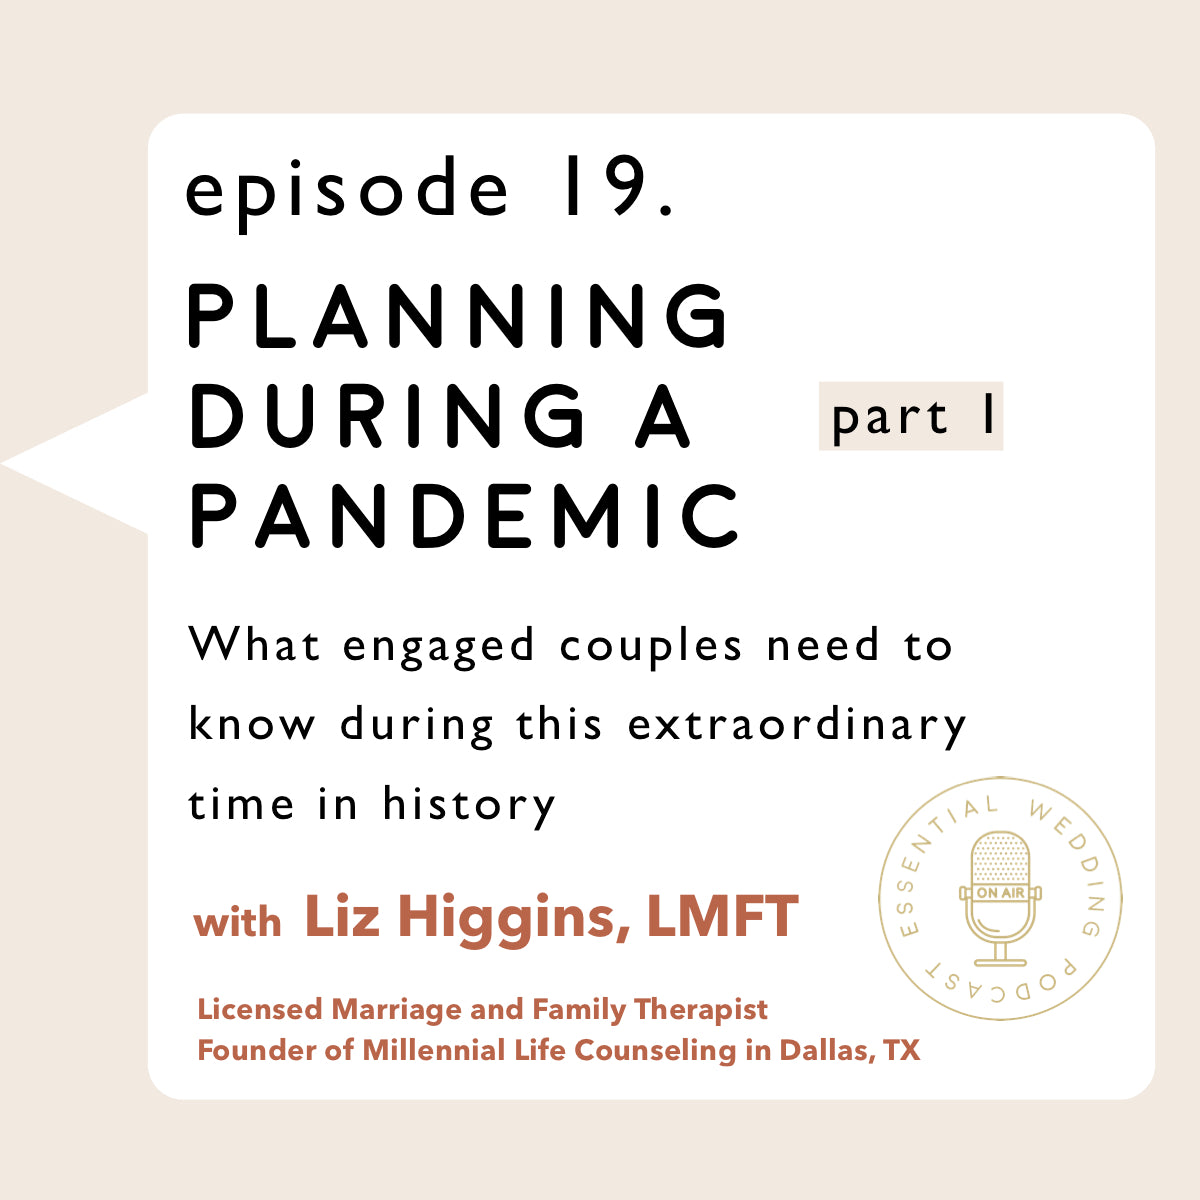 Ep. 19 Planning During a Pandemic pt. 1 w/ Liz Higgins, Licensed Marriage and Family Therapist and Founder of Millennial Life Counseling